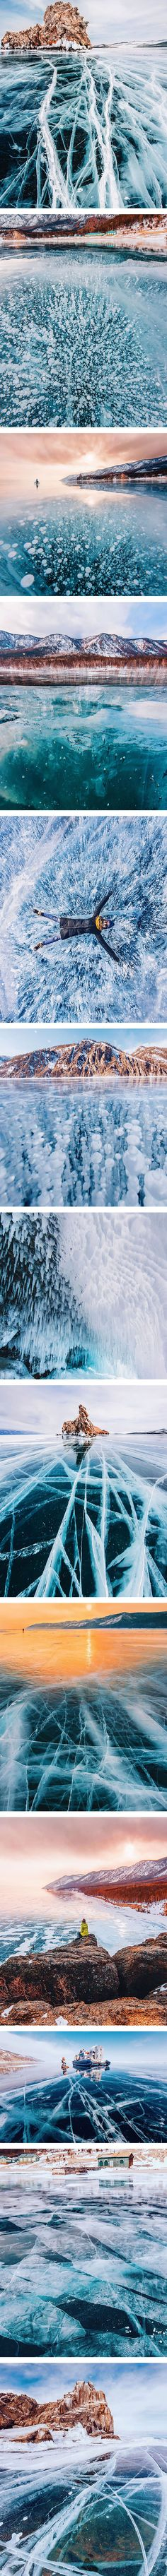 Photography walks on frozen Baikal, the deepest and oldest lake on earth and takes amazing photos - hobopeeba